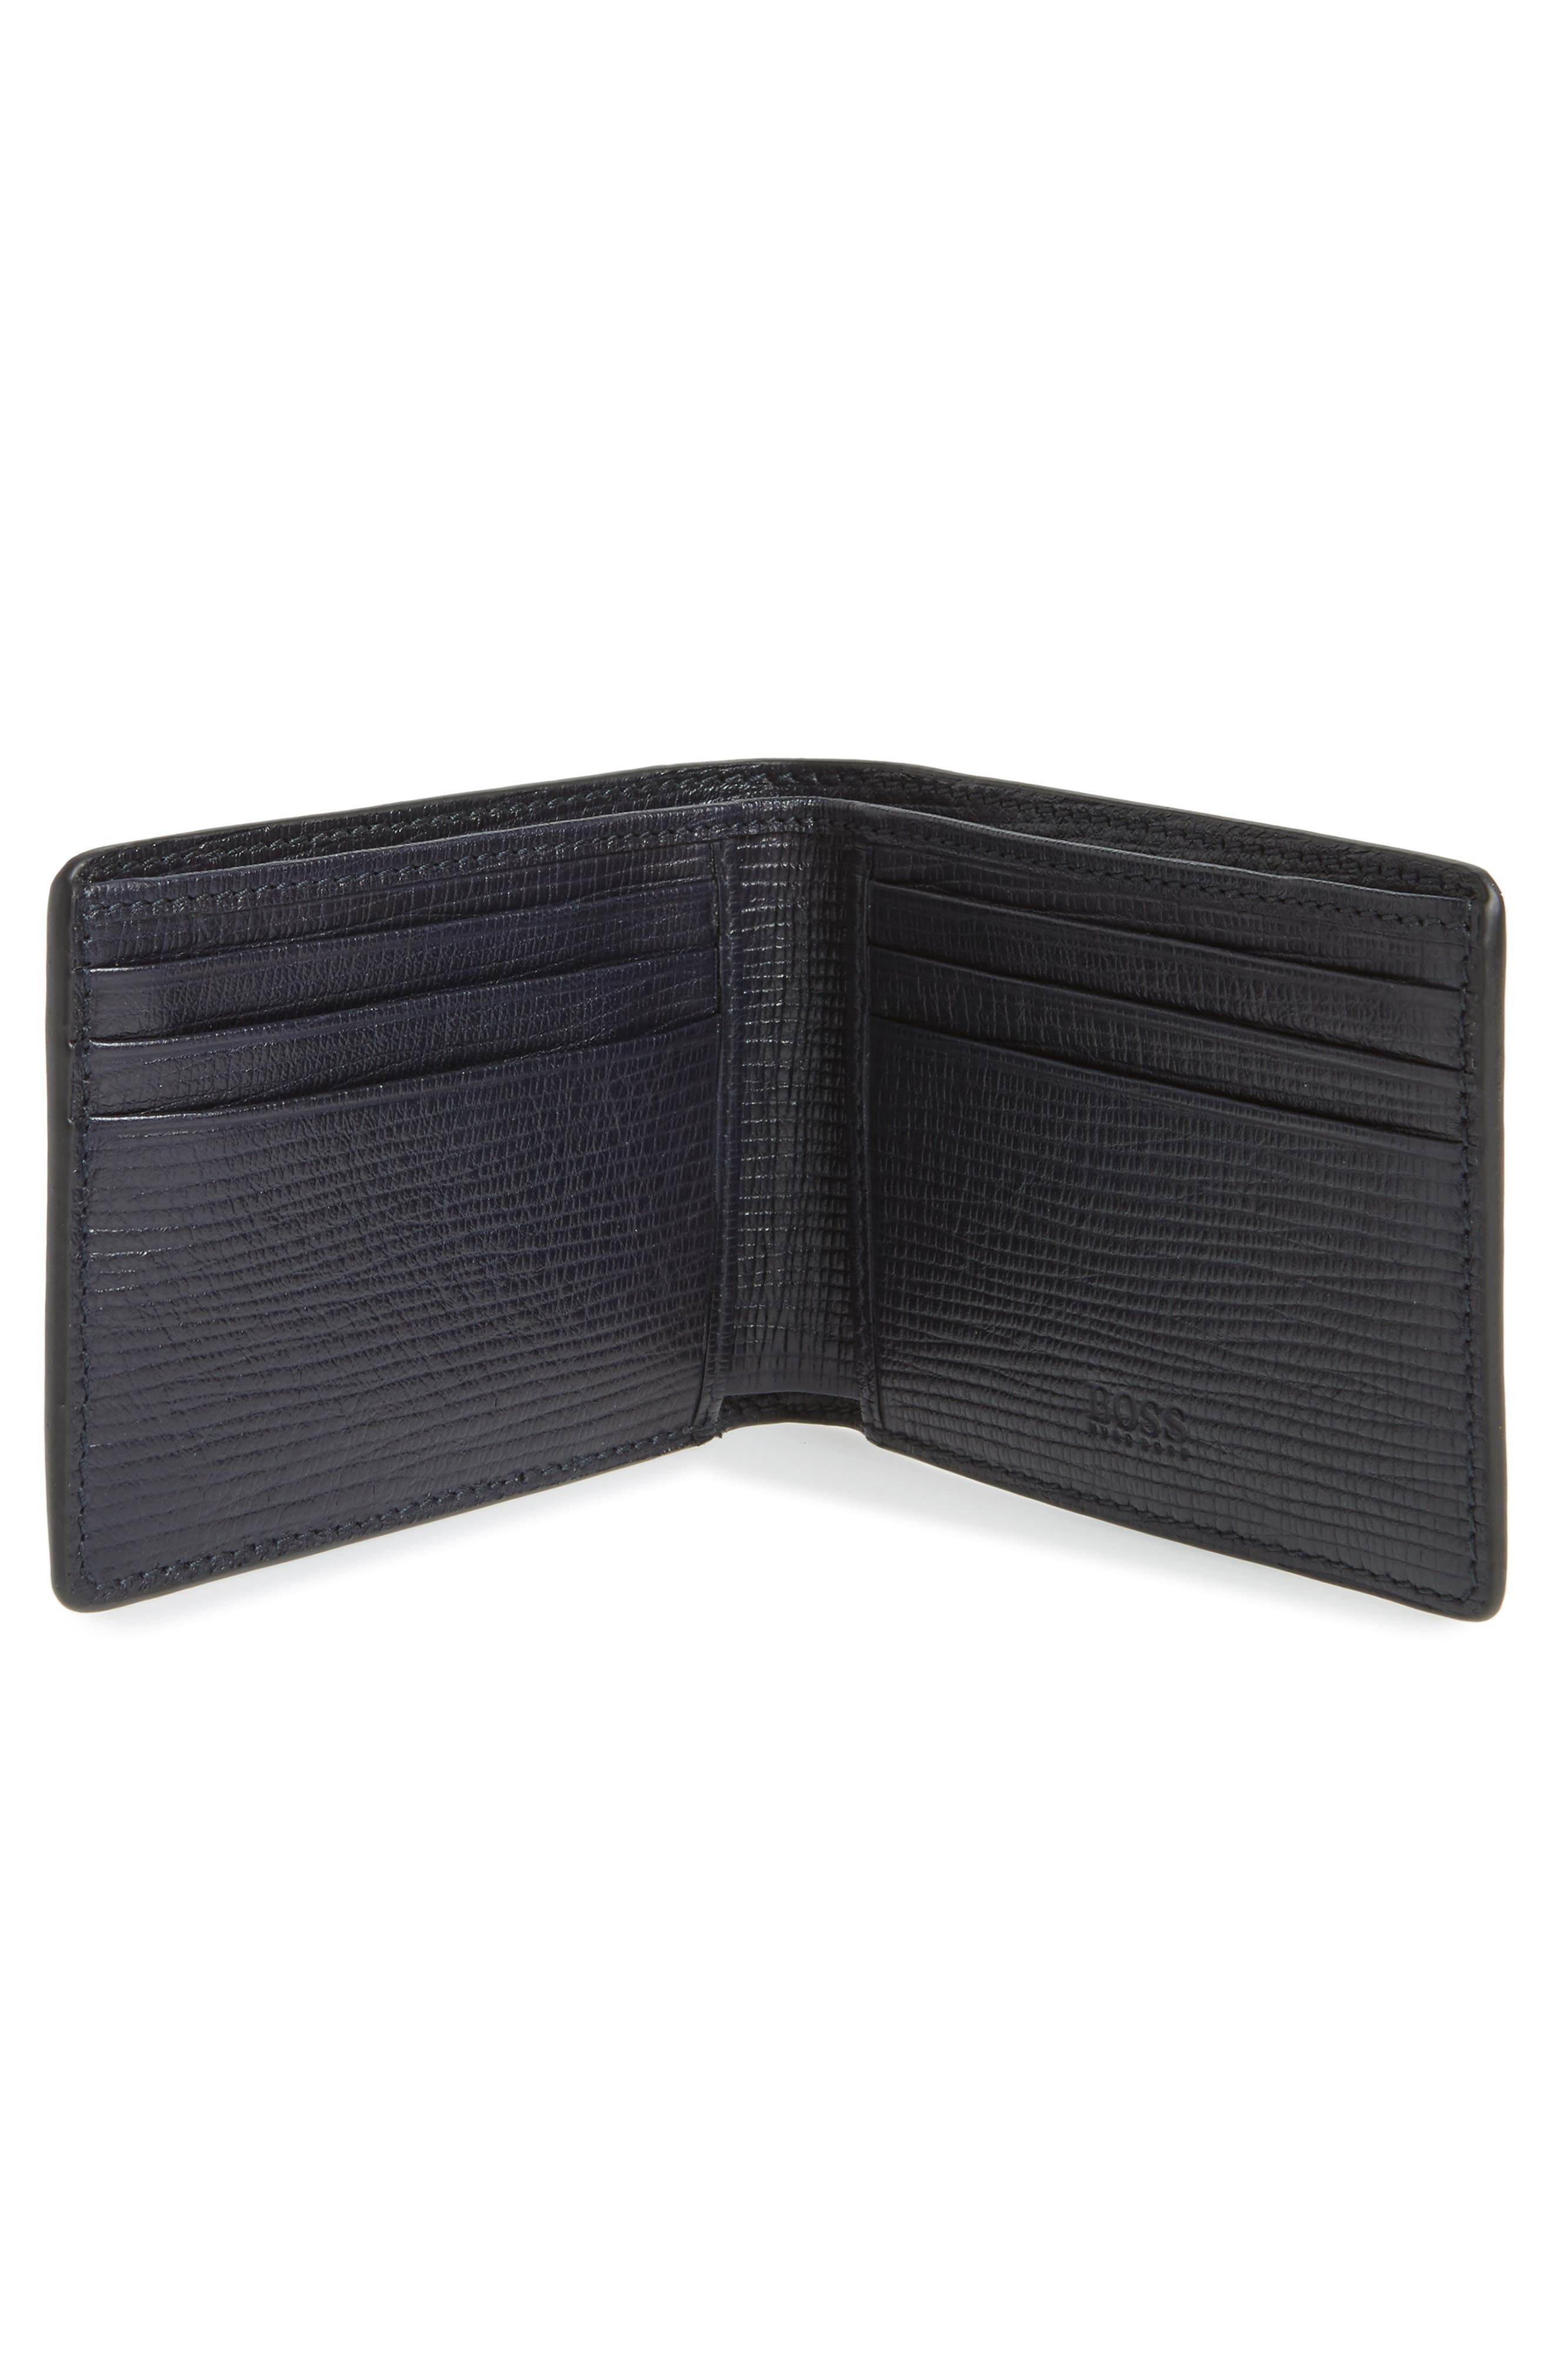 Timeless Leather Wallet,                             Alternate thumbnail 2, color,                             411